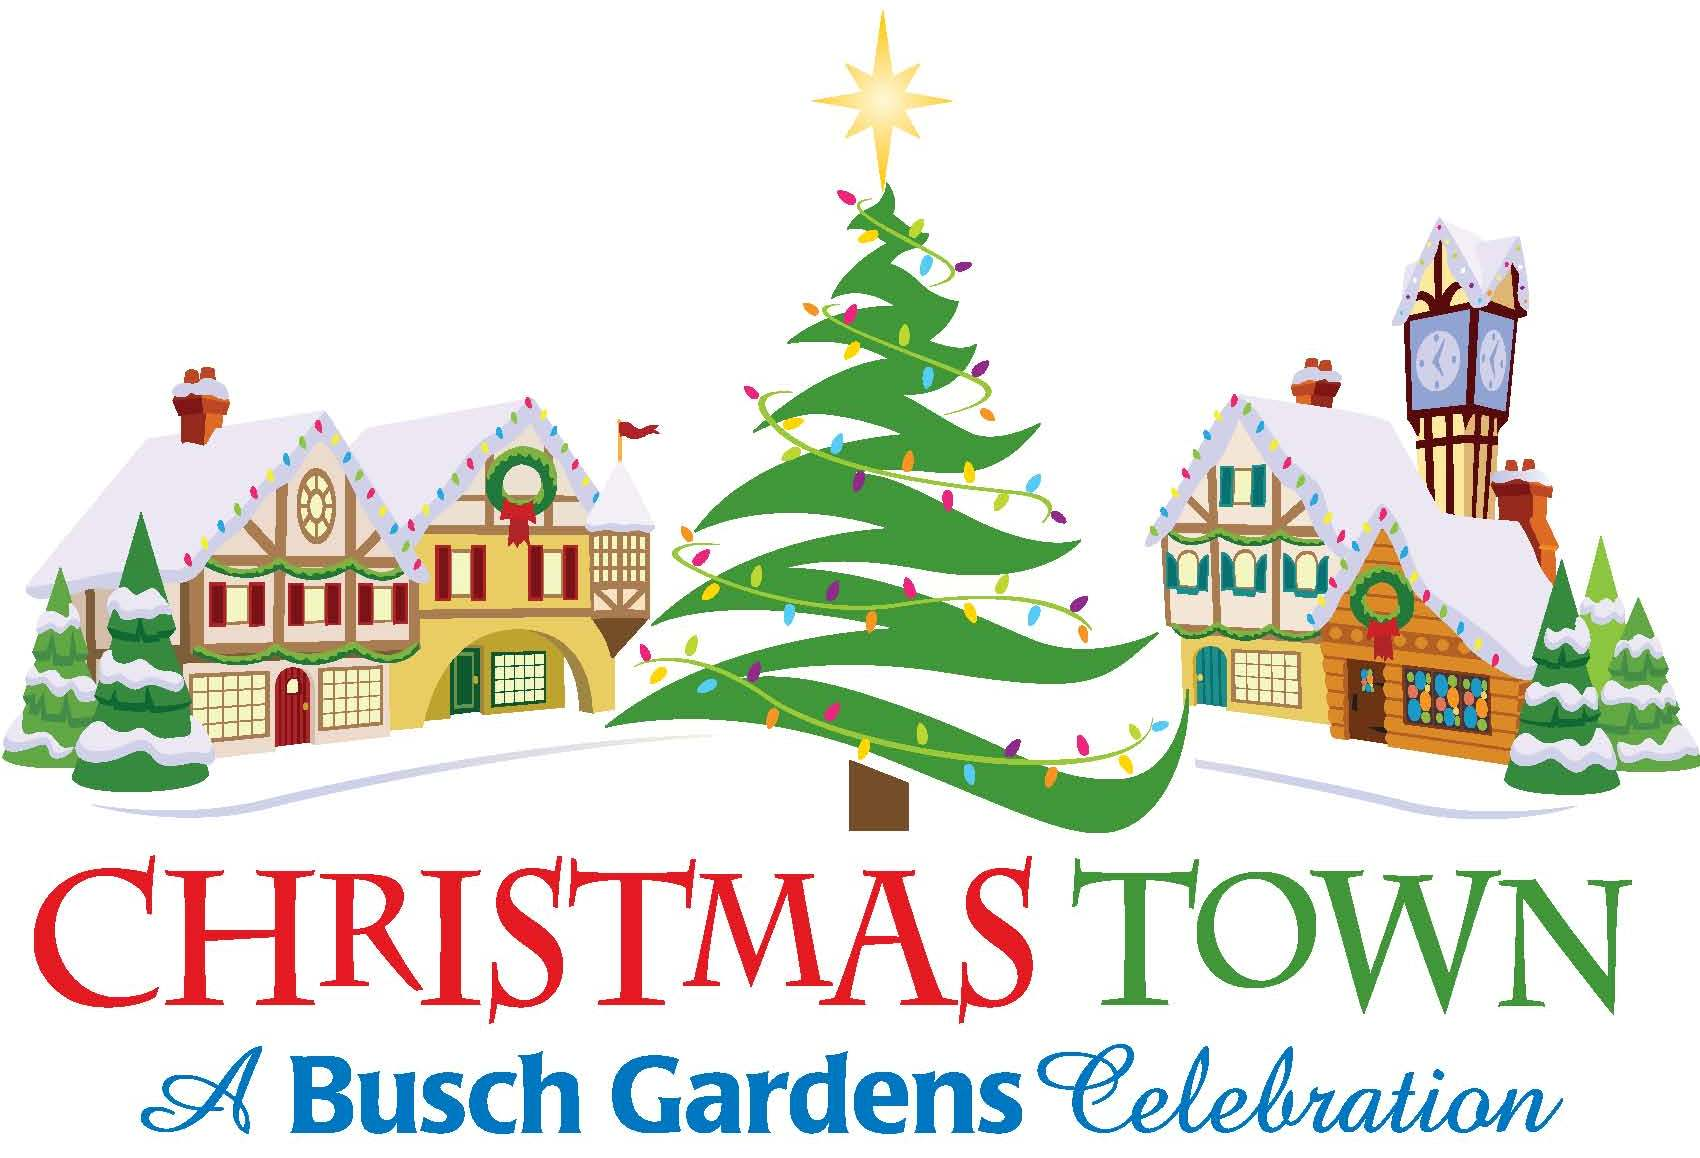 Christmas Town 2015 Pass Discount $25.